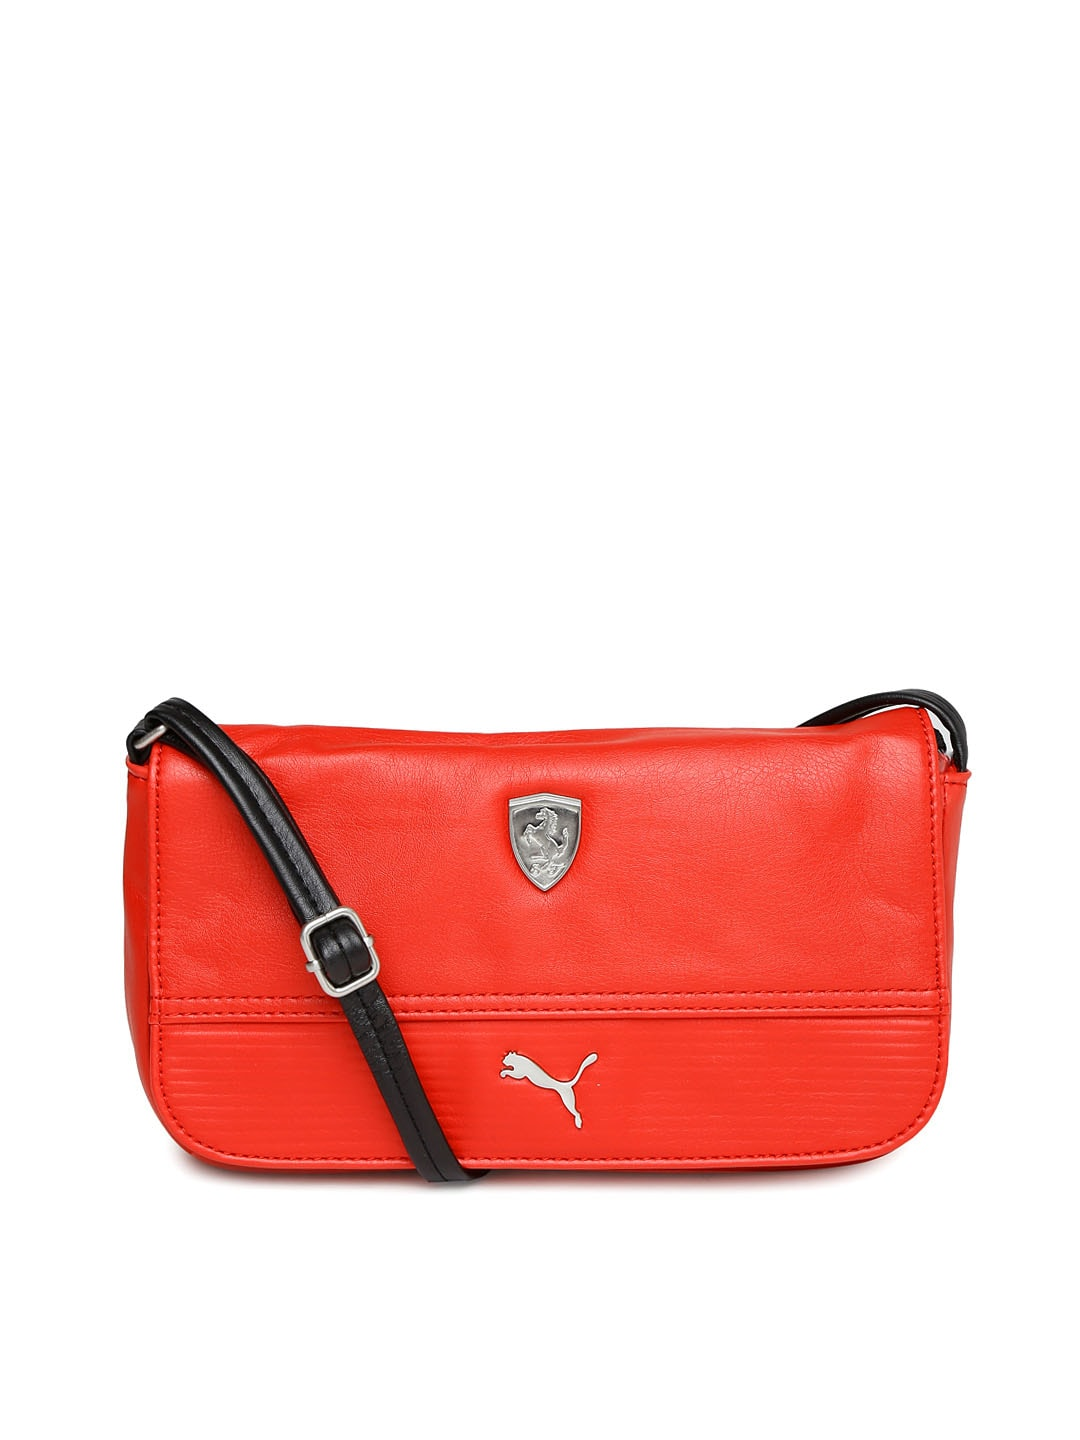 Buy PUMA Black Ferrari Sling Bag - Handbags for Women | Myntra